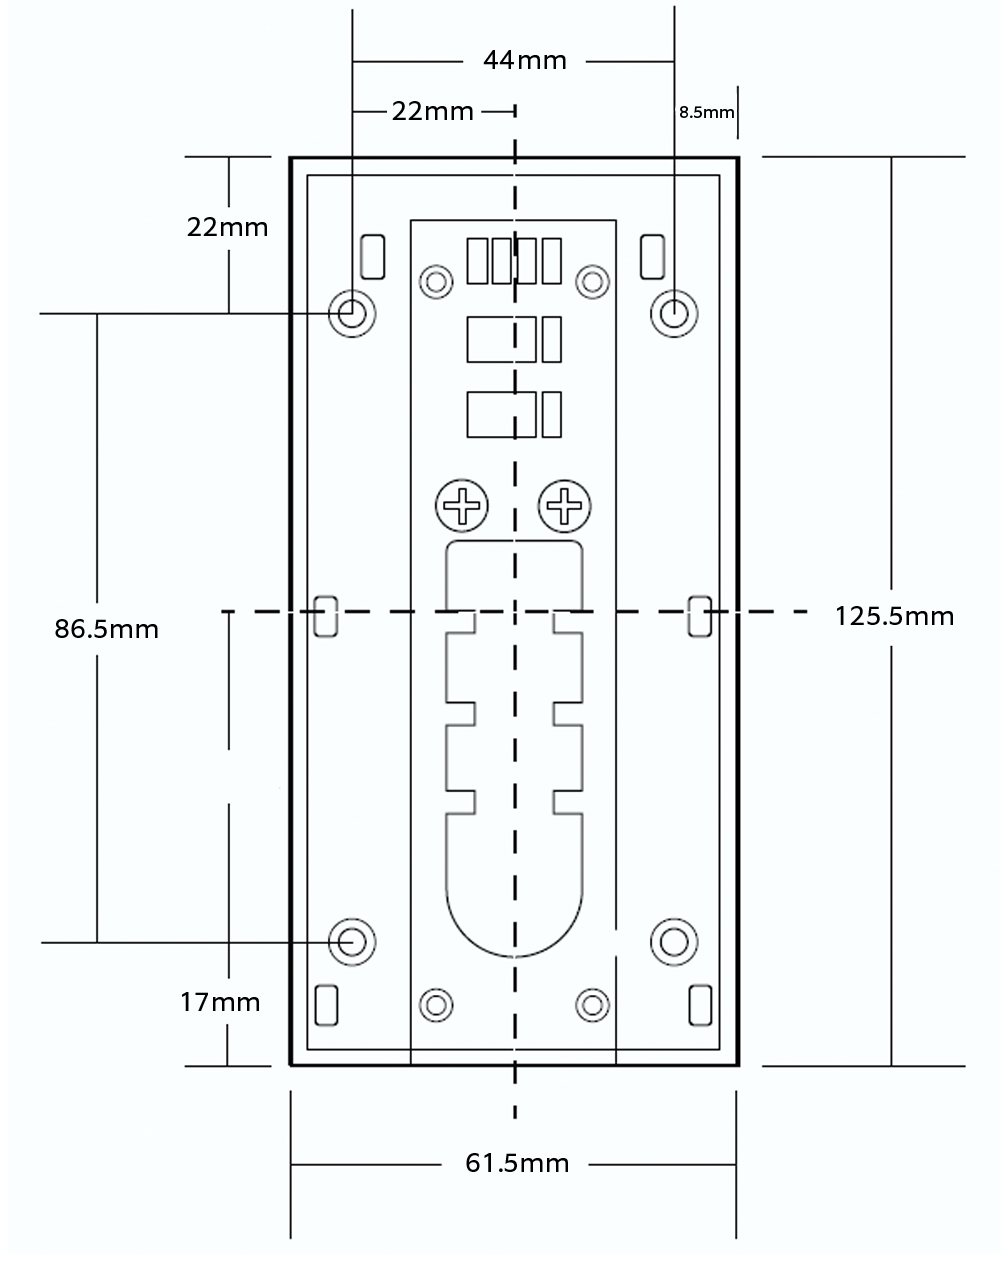 How To Connect Your Ring Video Doorbell 2 Directly To A Low Voltage Transformer Without A Pre Existing Doorbell Ring Help